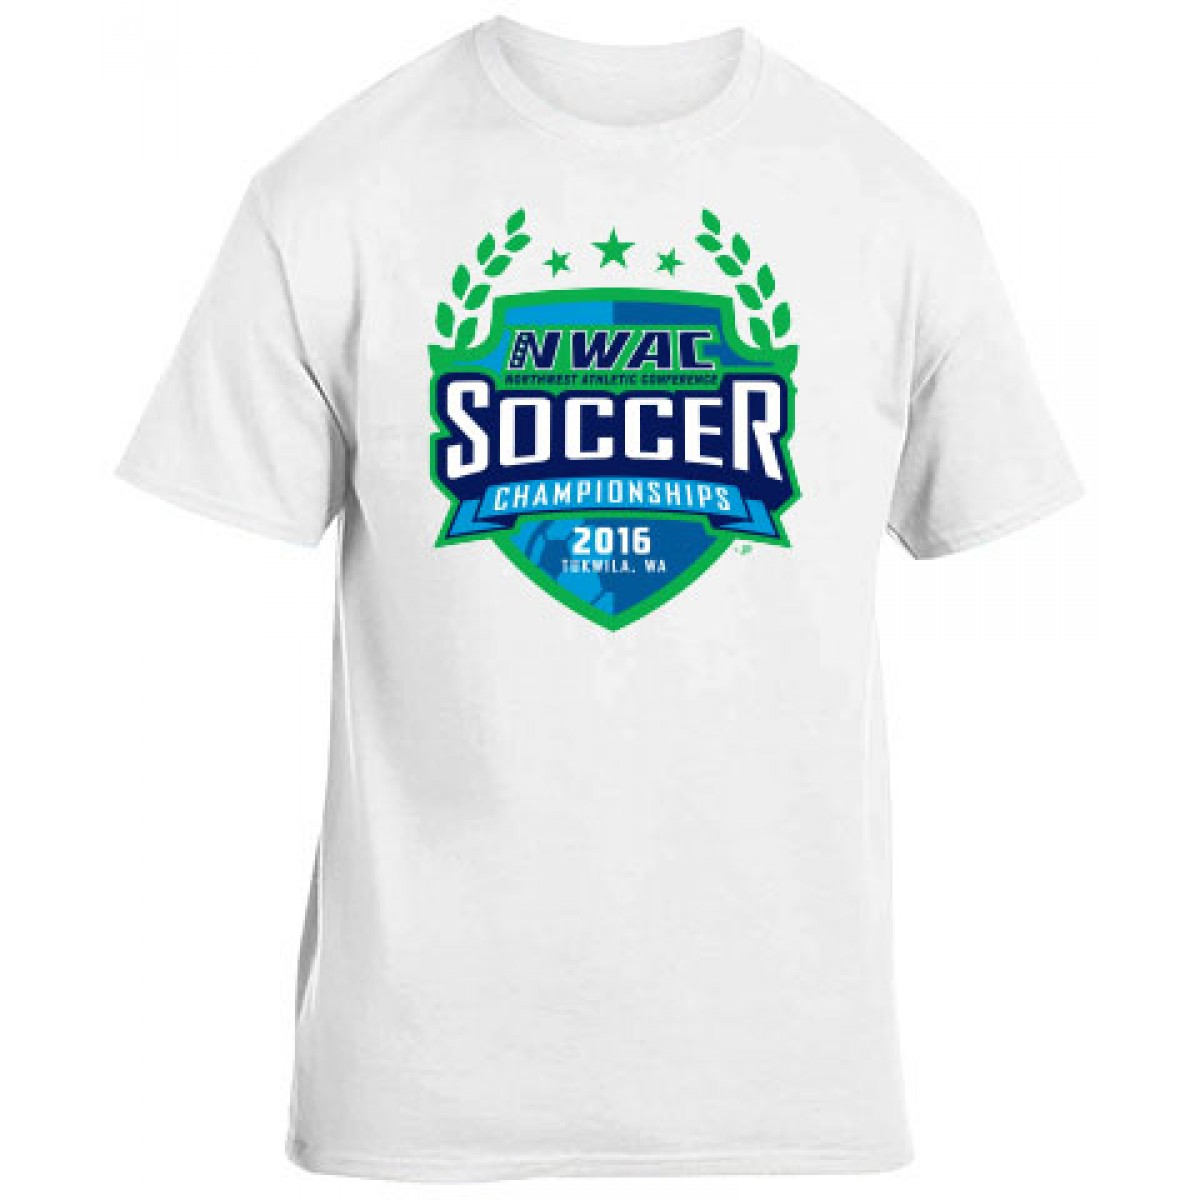 2016 NWAC Soccer Championships Special Item-White-M